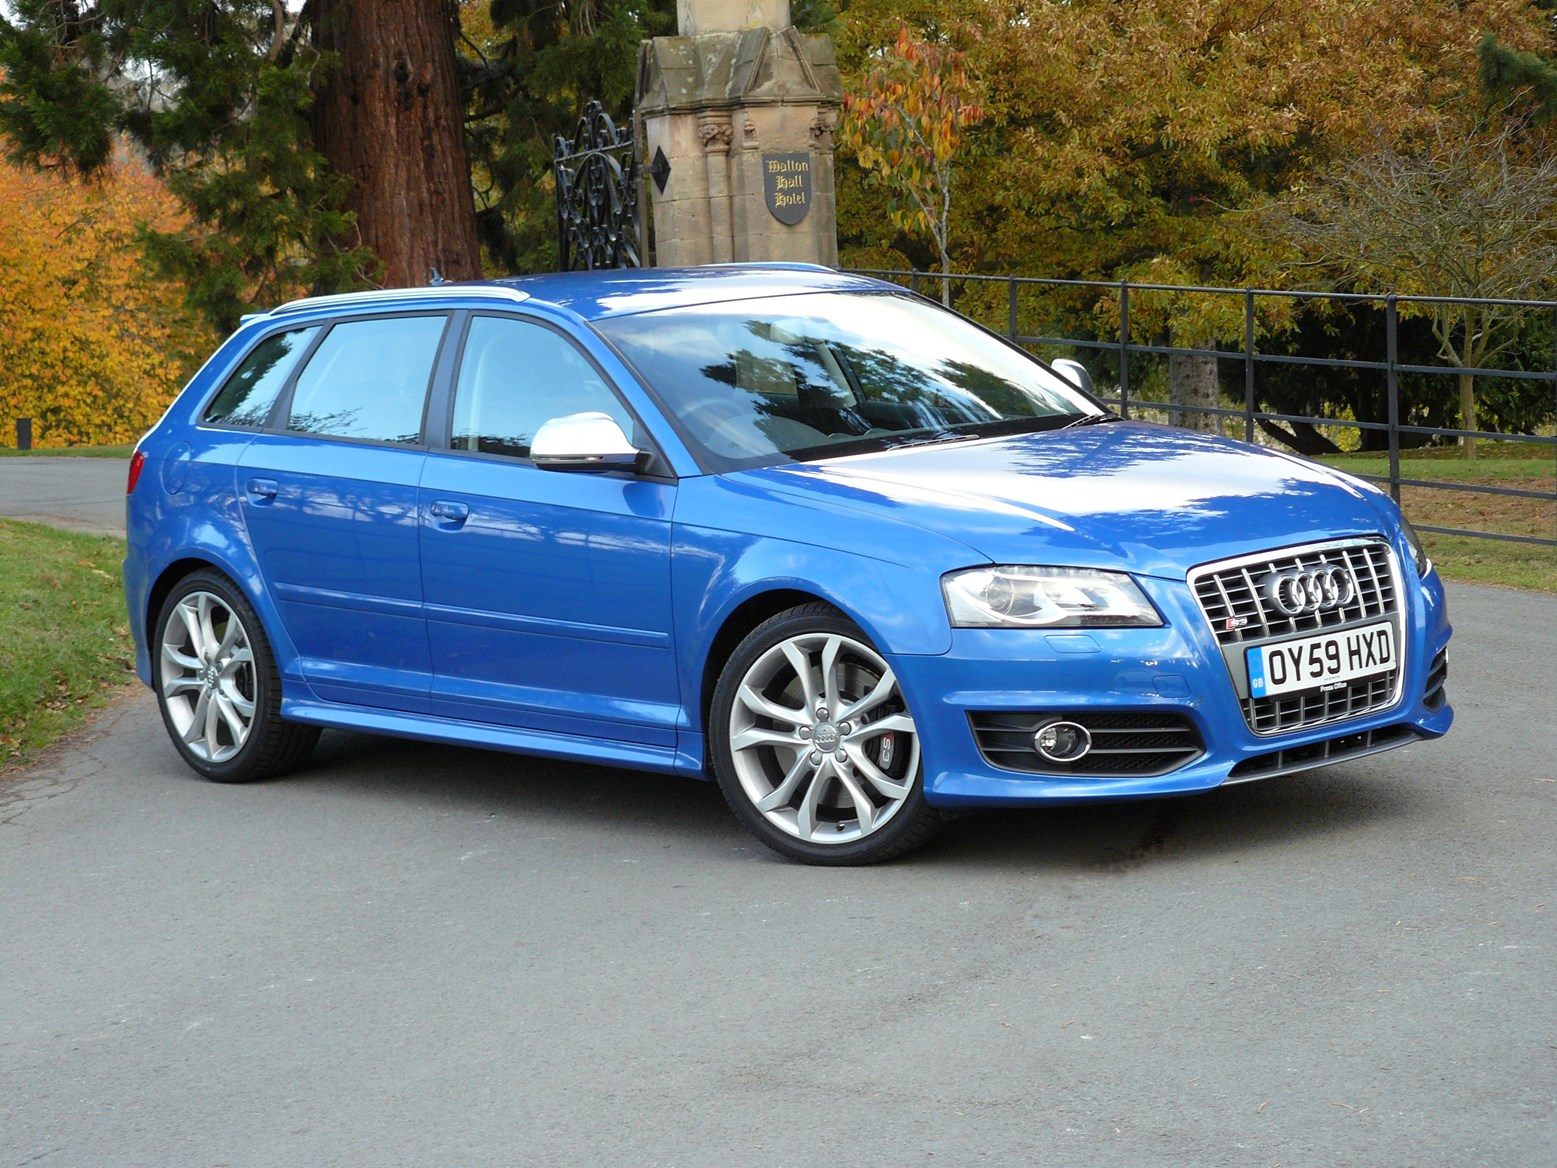 audi a3 s3 review 2006 2013 parkers. Black Bedroom Furniture Sets. Home Design Ideas